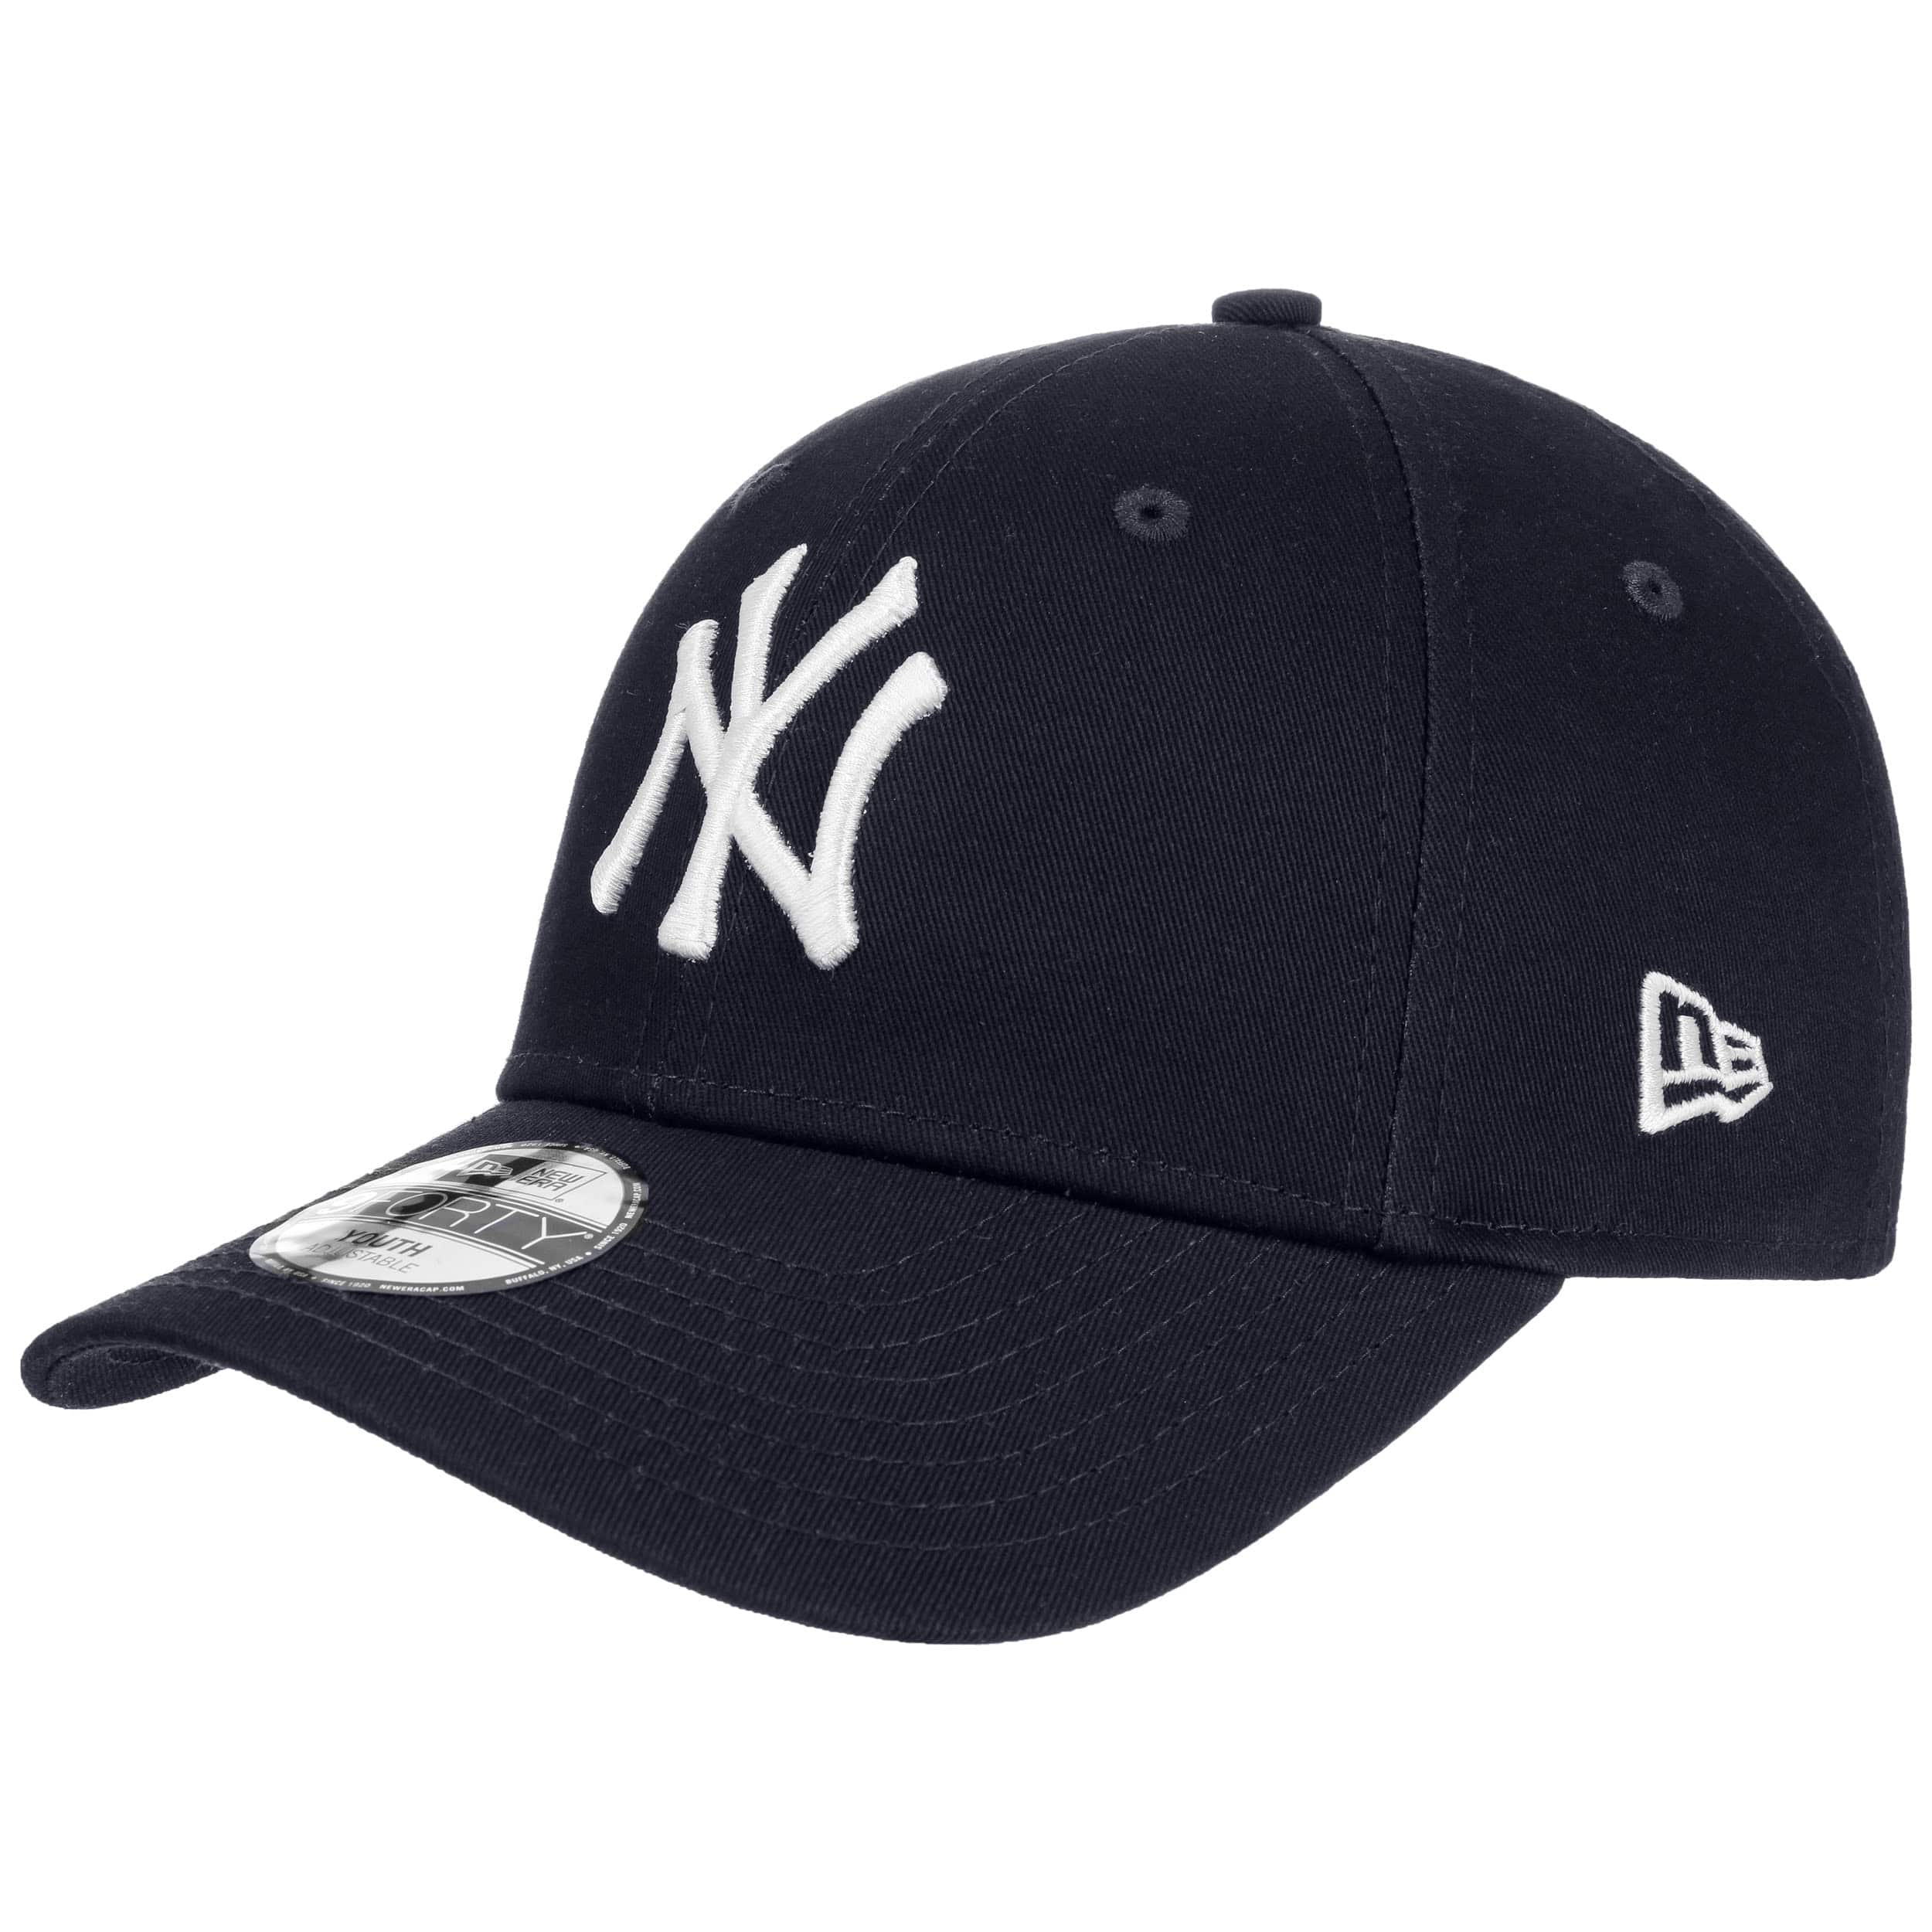 NY Yankees graphite New Era 9Fifty Snapback Kinder Cap C